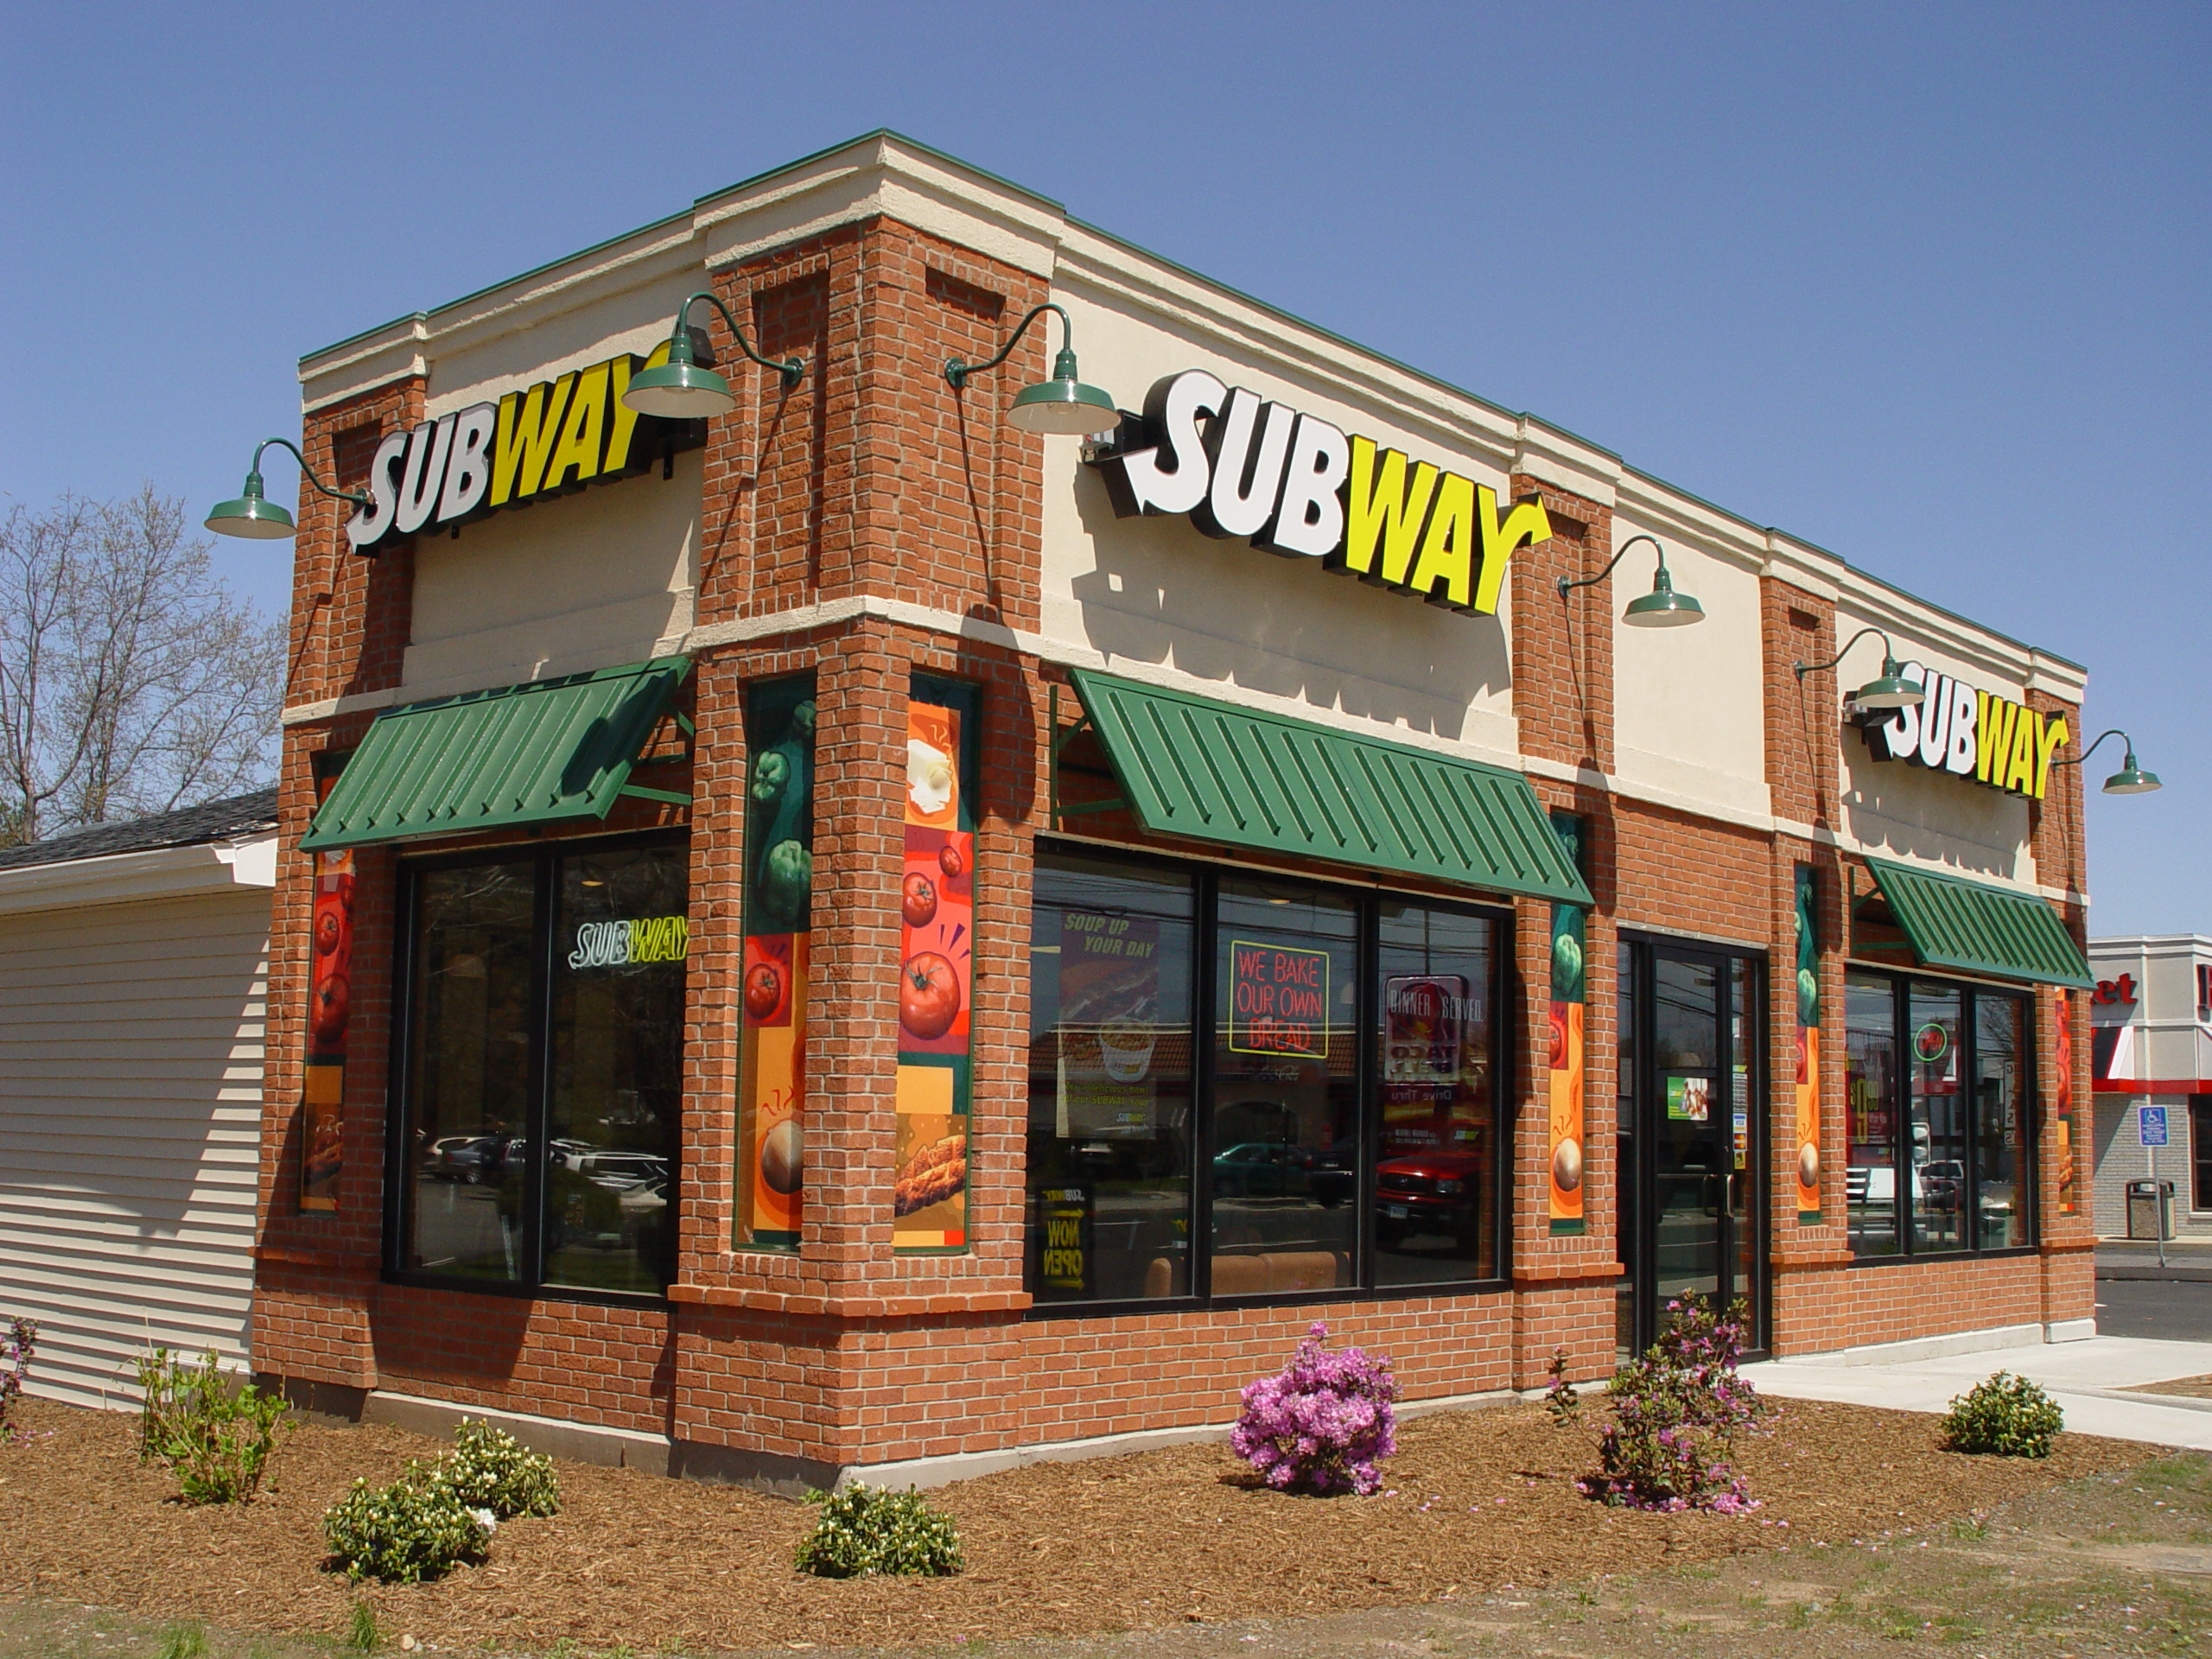 Subway, Stuart IA